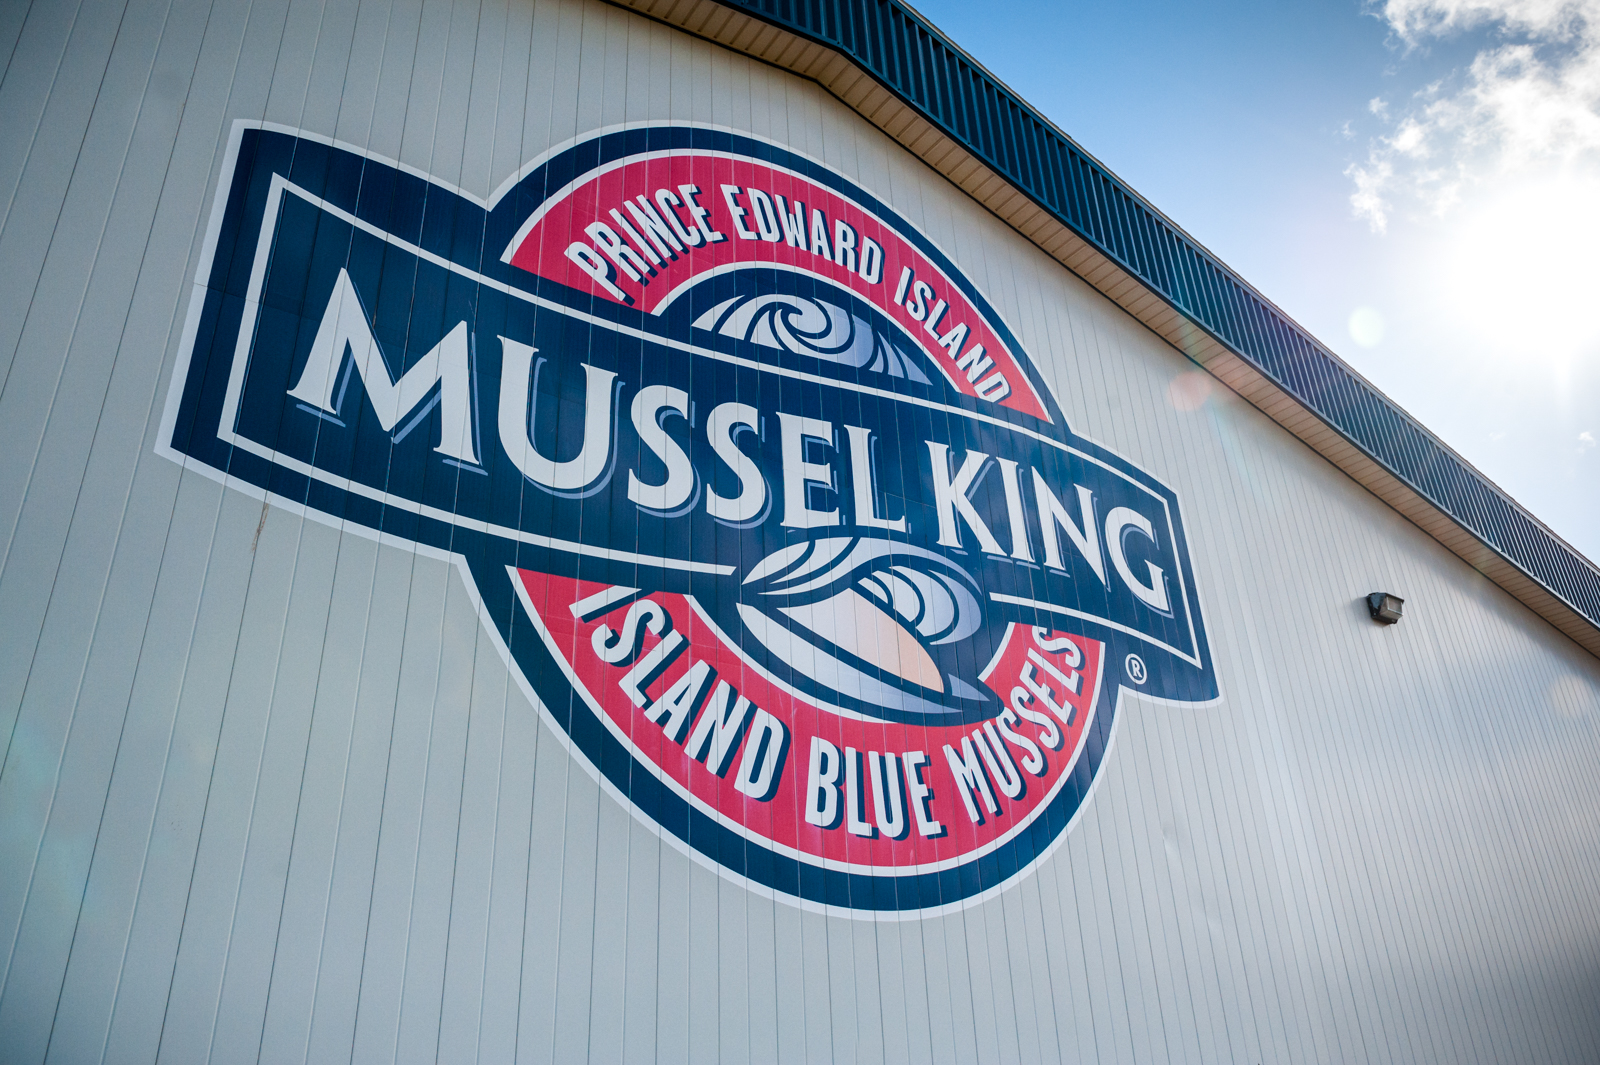 Mussel King sign